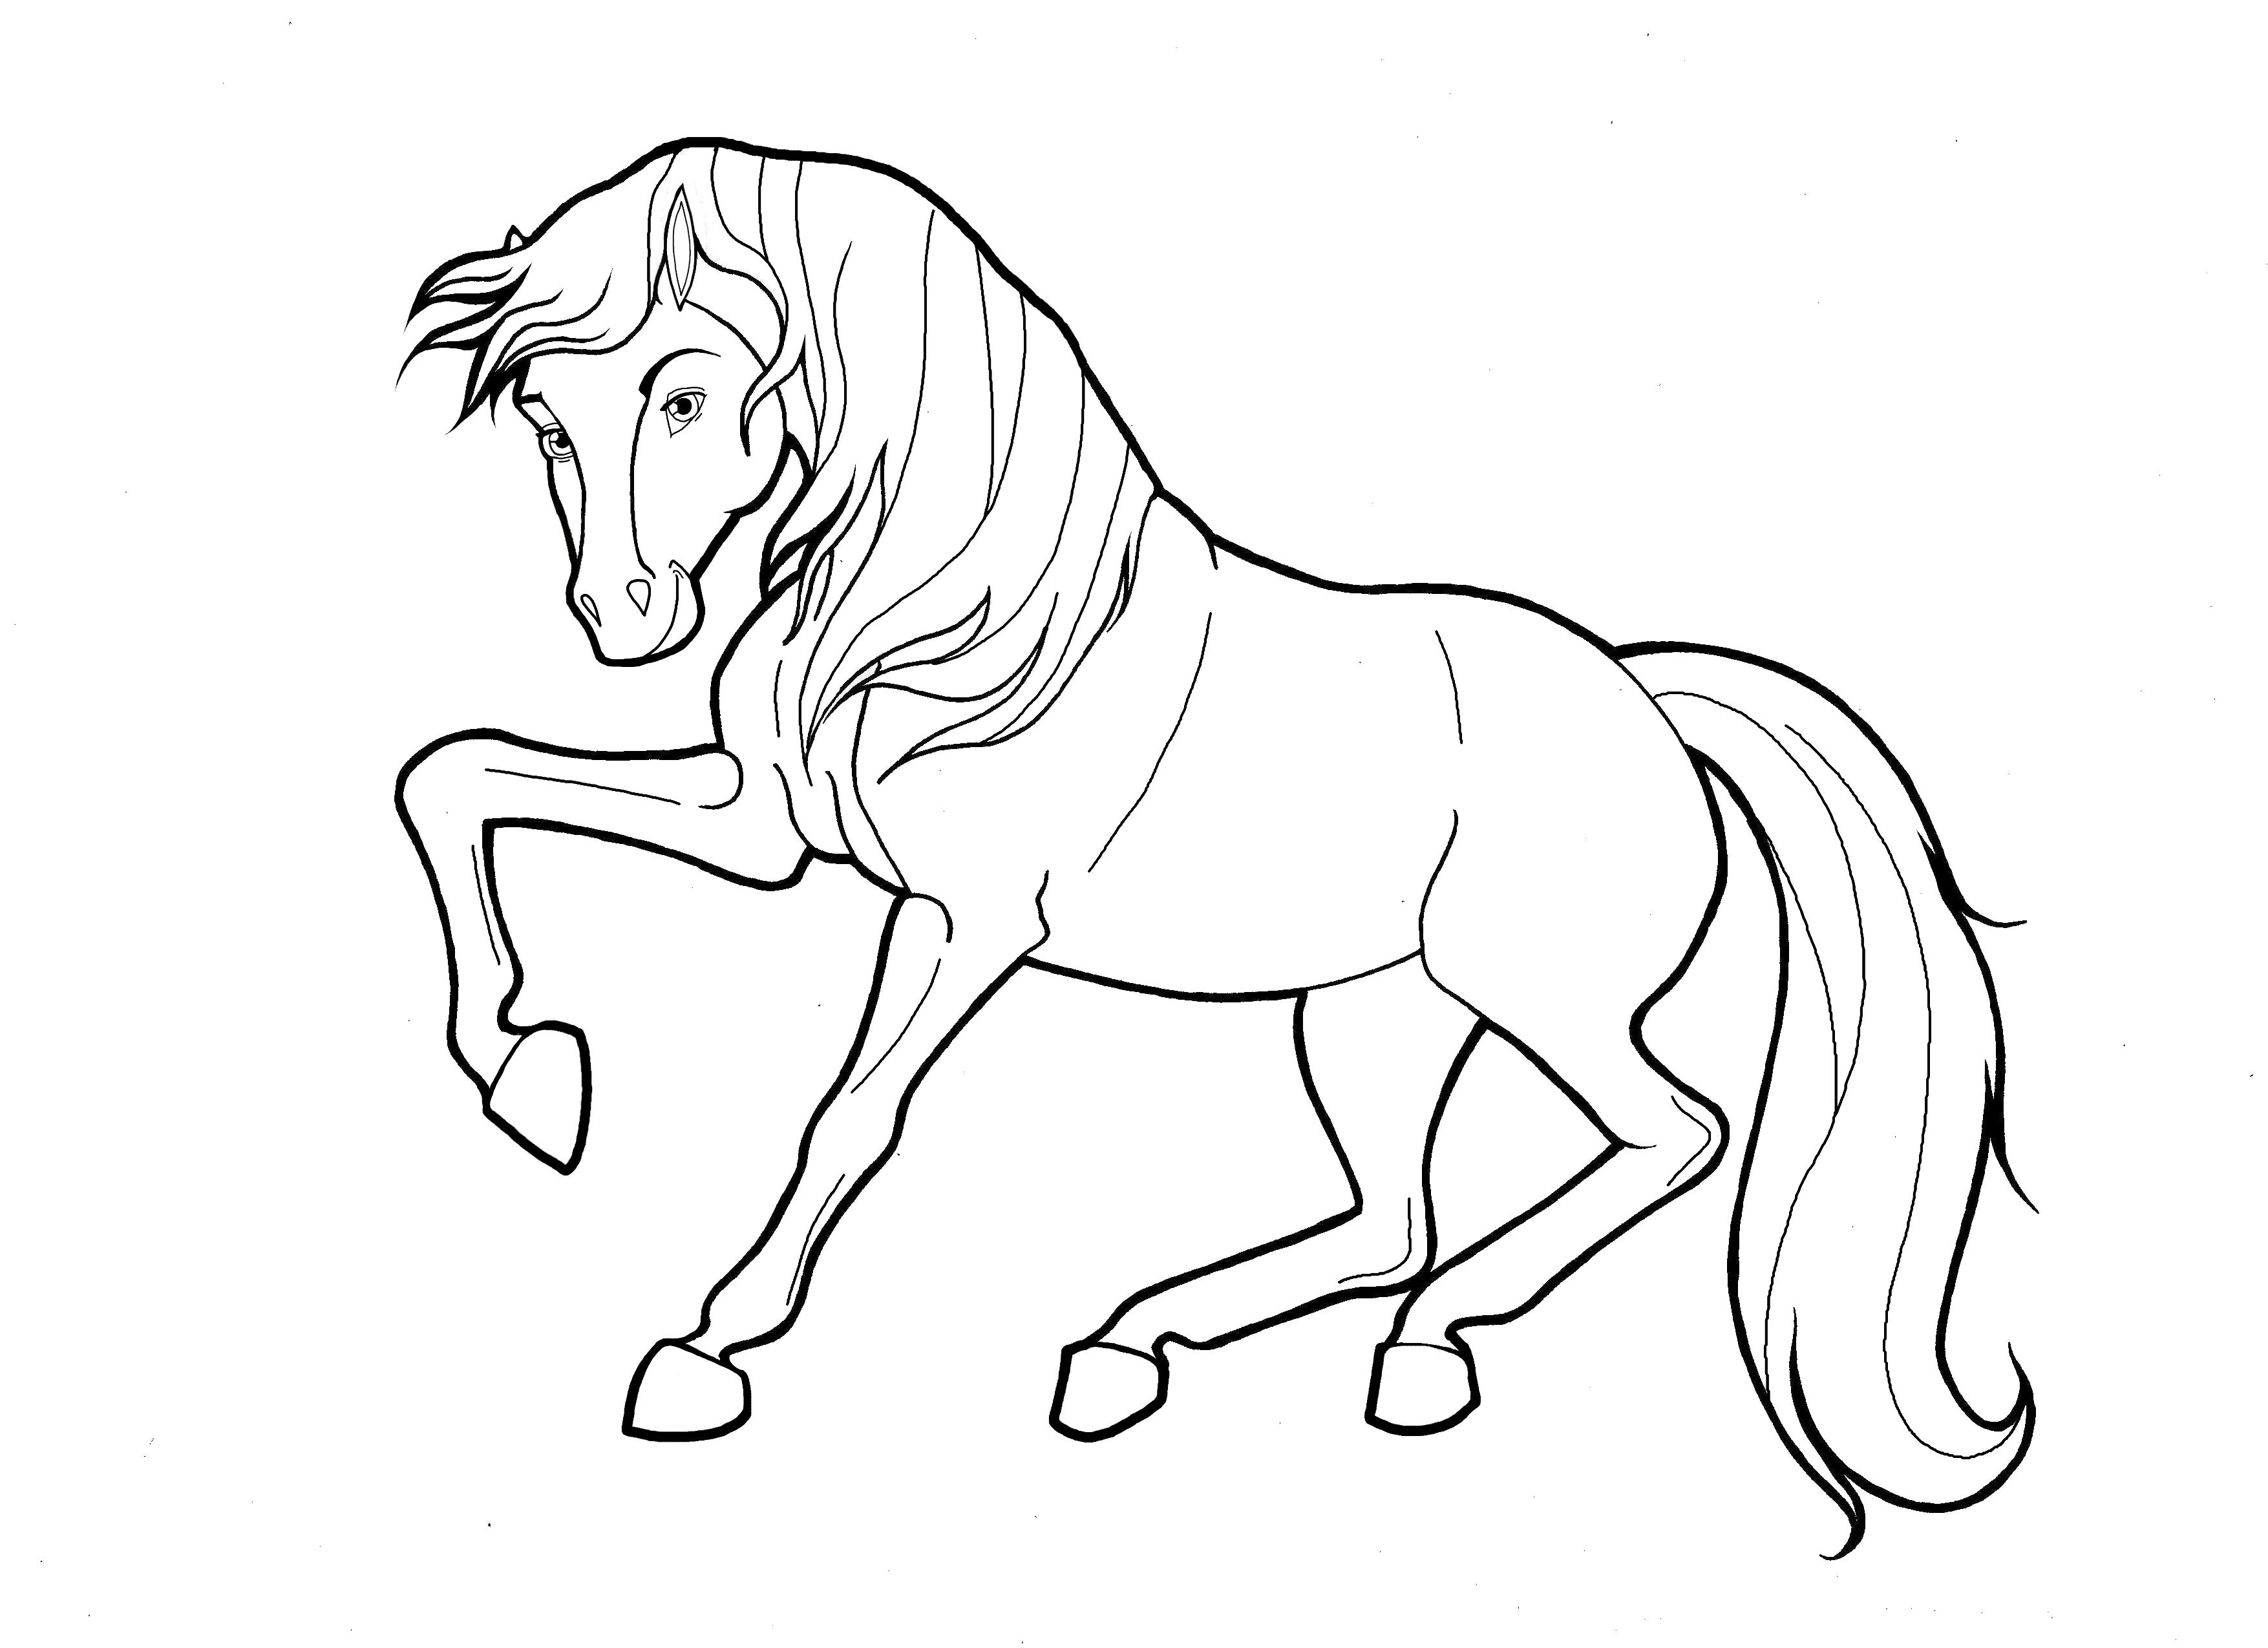 Spirit Coloring Pages Online Games Archives Best Of Spirit